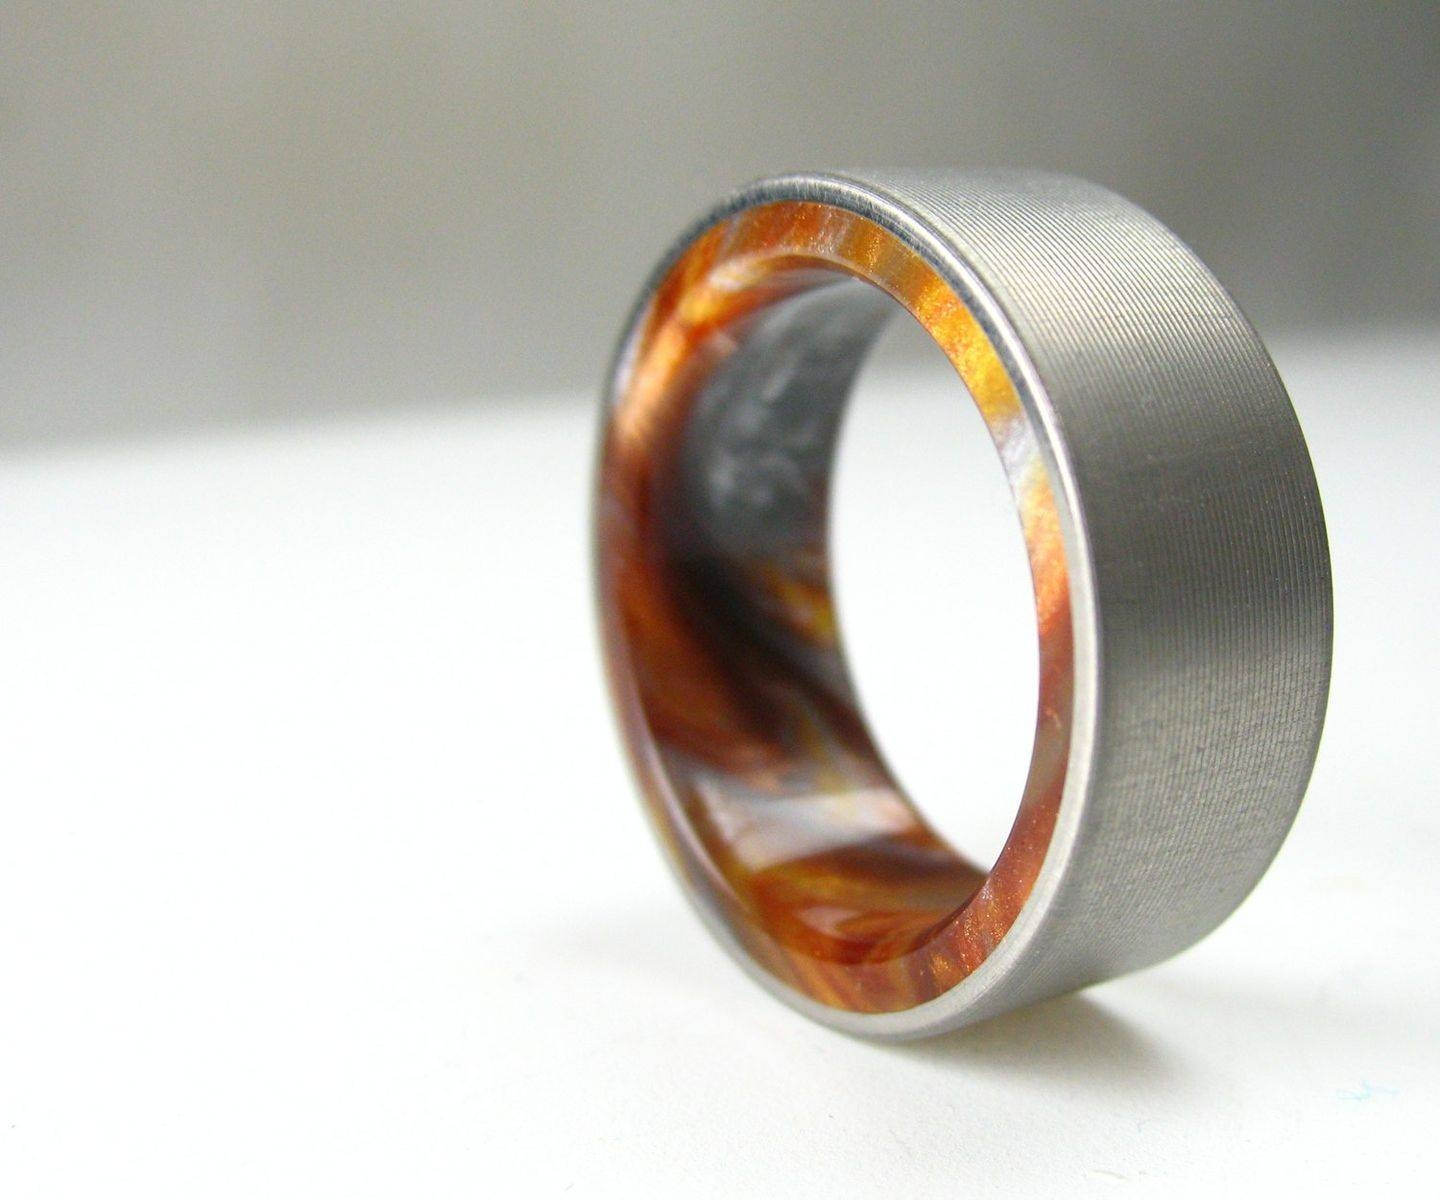 Modern Wedding Bands | Contemporary Wedding Rings | Custommade Pertaining To Mens Wooden Wedding Bands (Gallery 5 of 15)